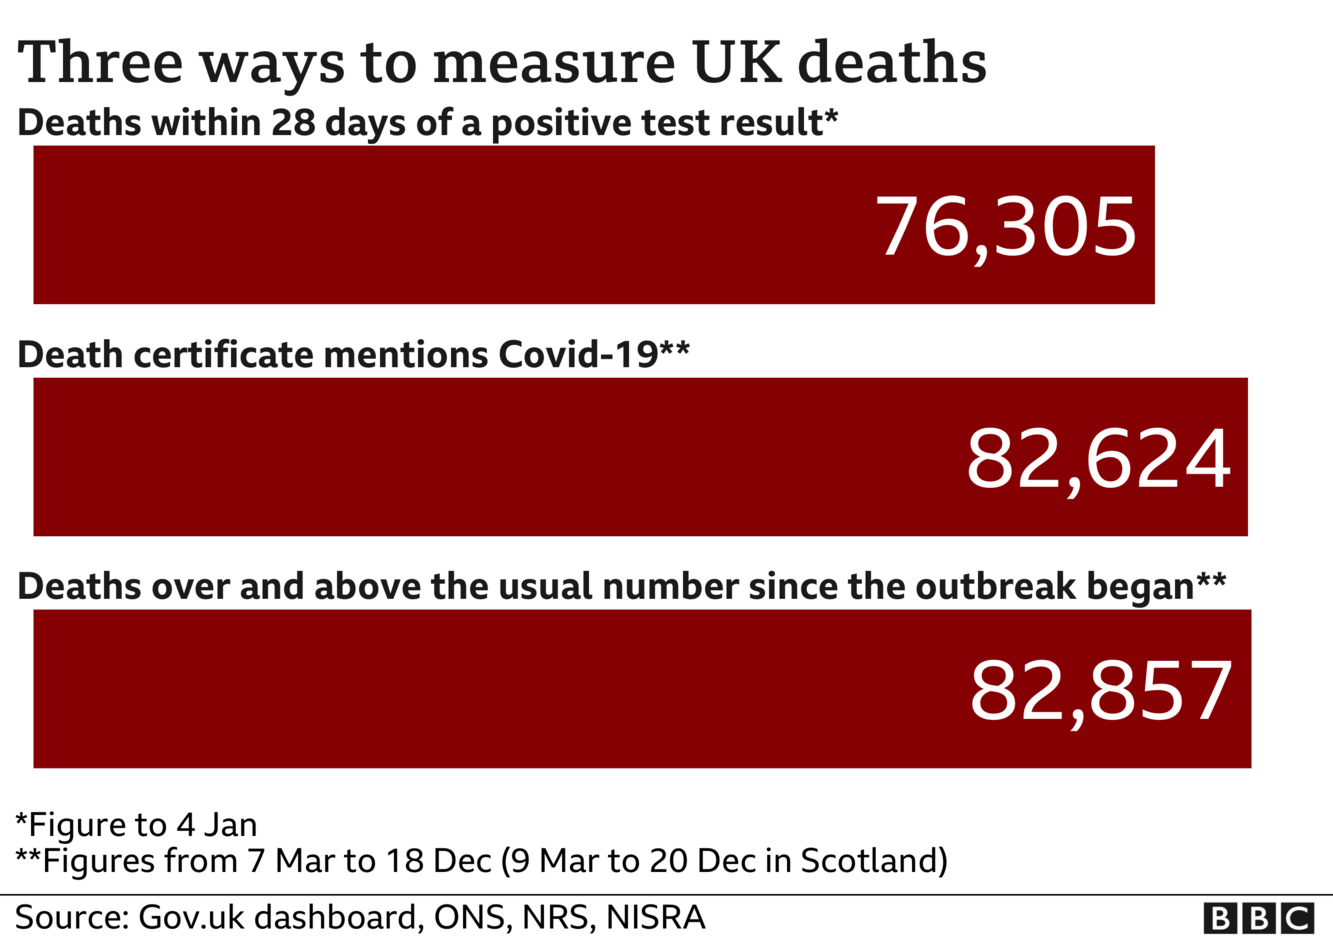 Chart showing three different totals for coronavirus deaths - the government measures all deaths within 28 days of a positive test, that total is 76,305 The ONS includes all deaths where coronavirus was mentioned on the death certificate, that total is 82,624 and the final total includes all deaths over and above the average for the time of year and that total is now 82,857. Updated 5 Jan